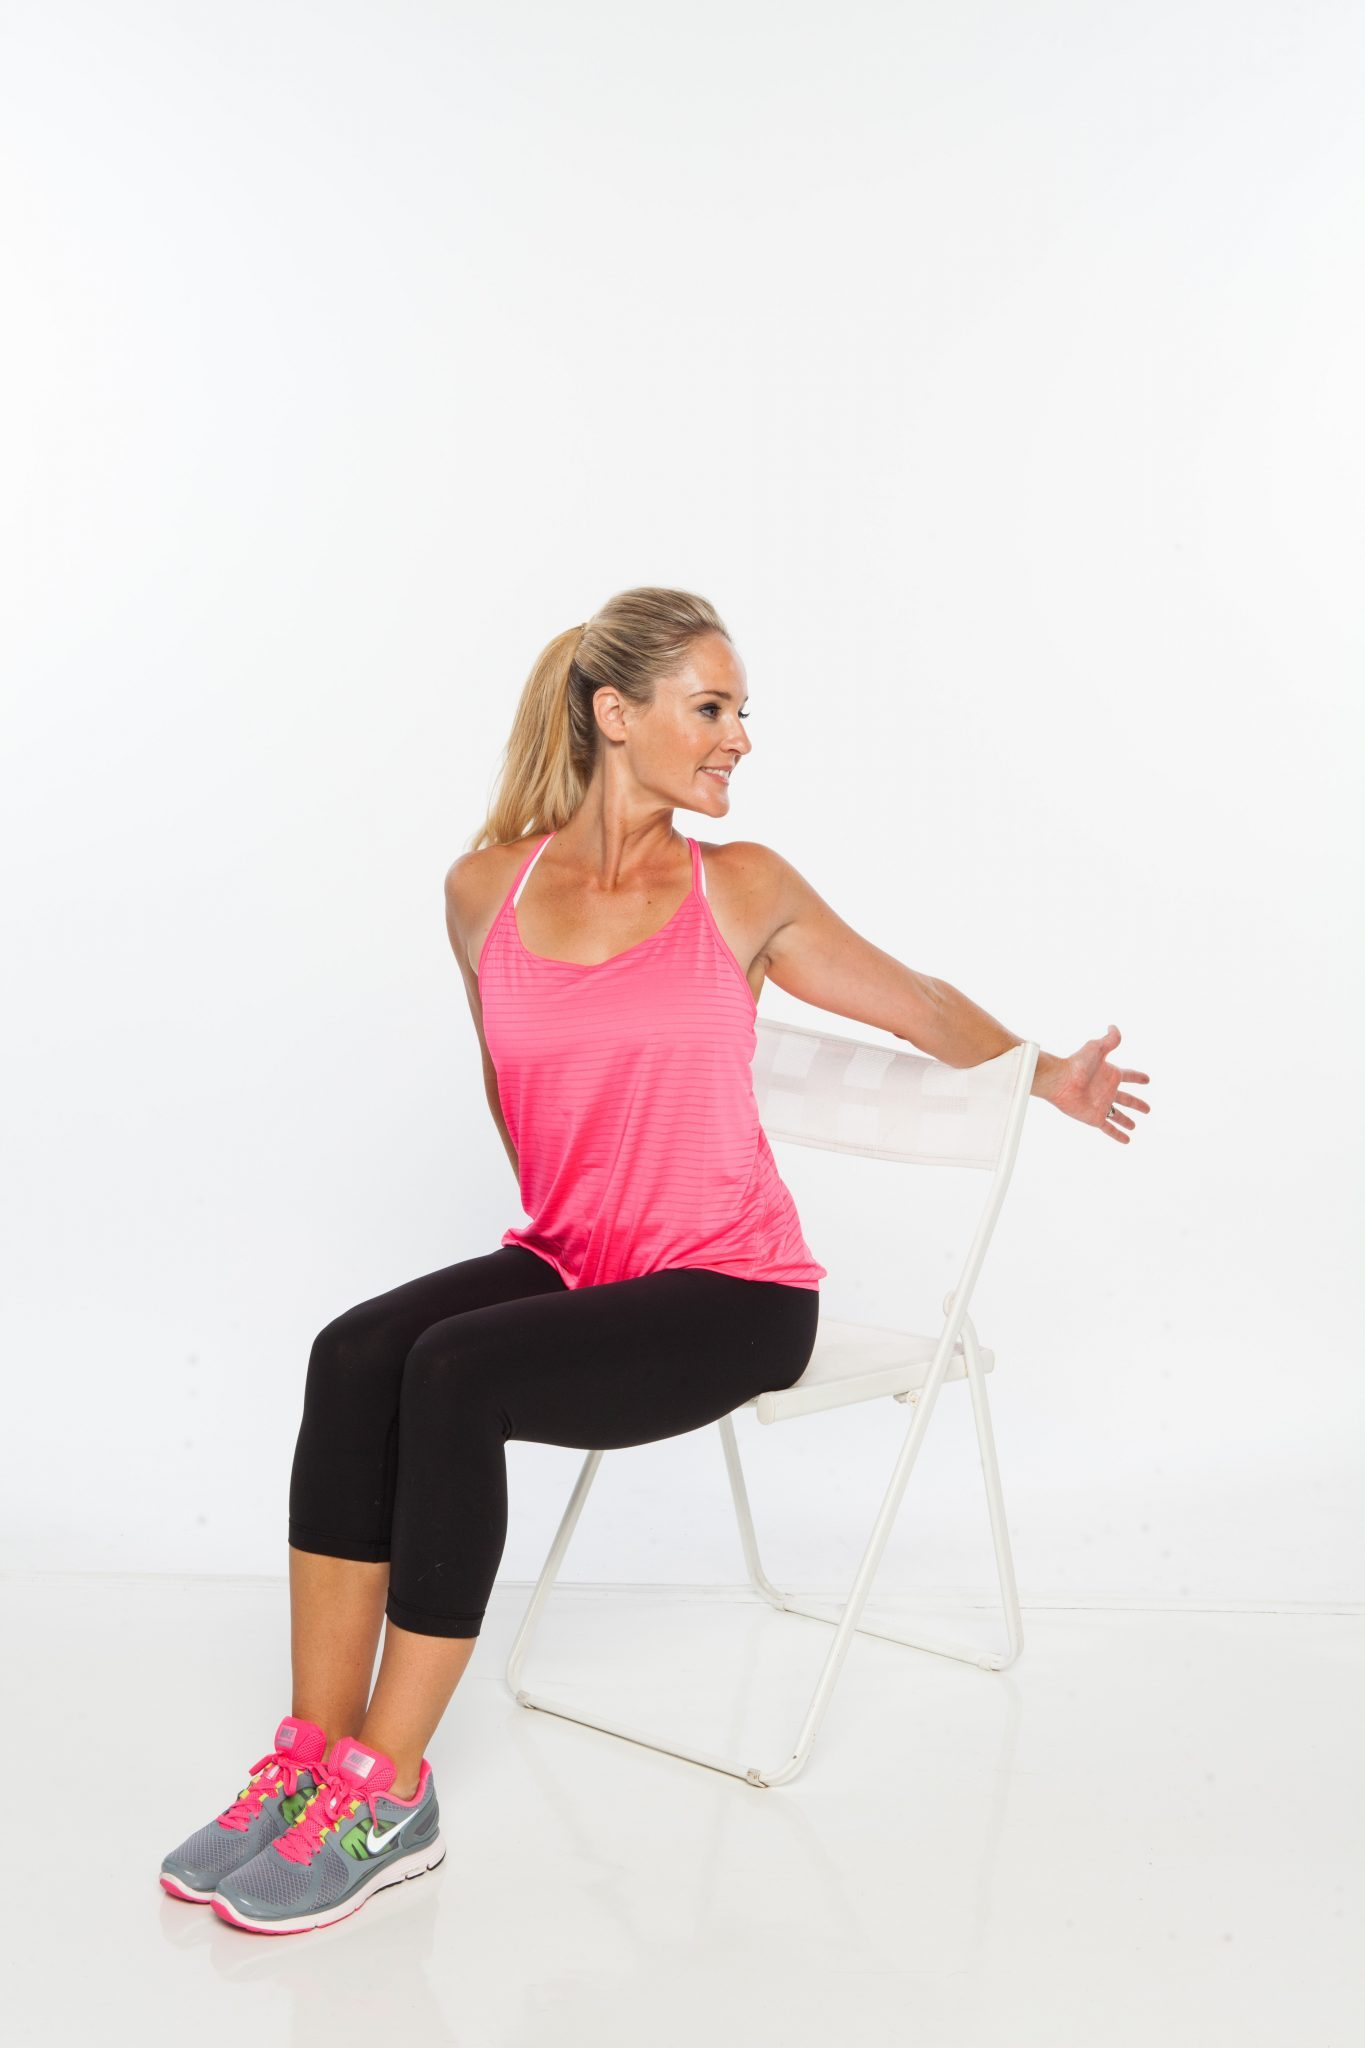 Stretching Chair 6 Seated Yoga Stretches For Walkers And Runners Myfitnesspal